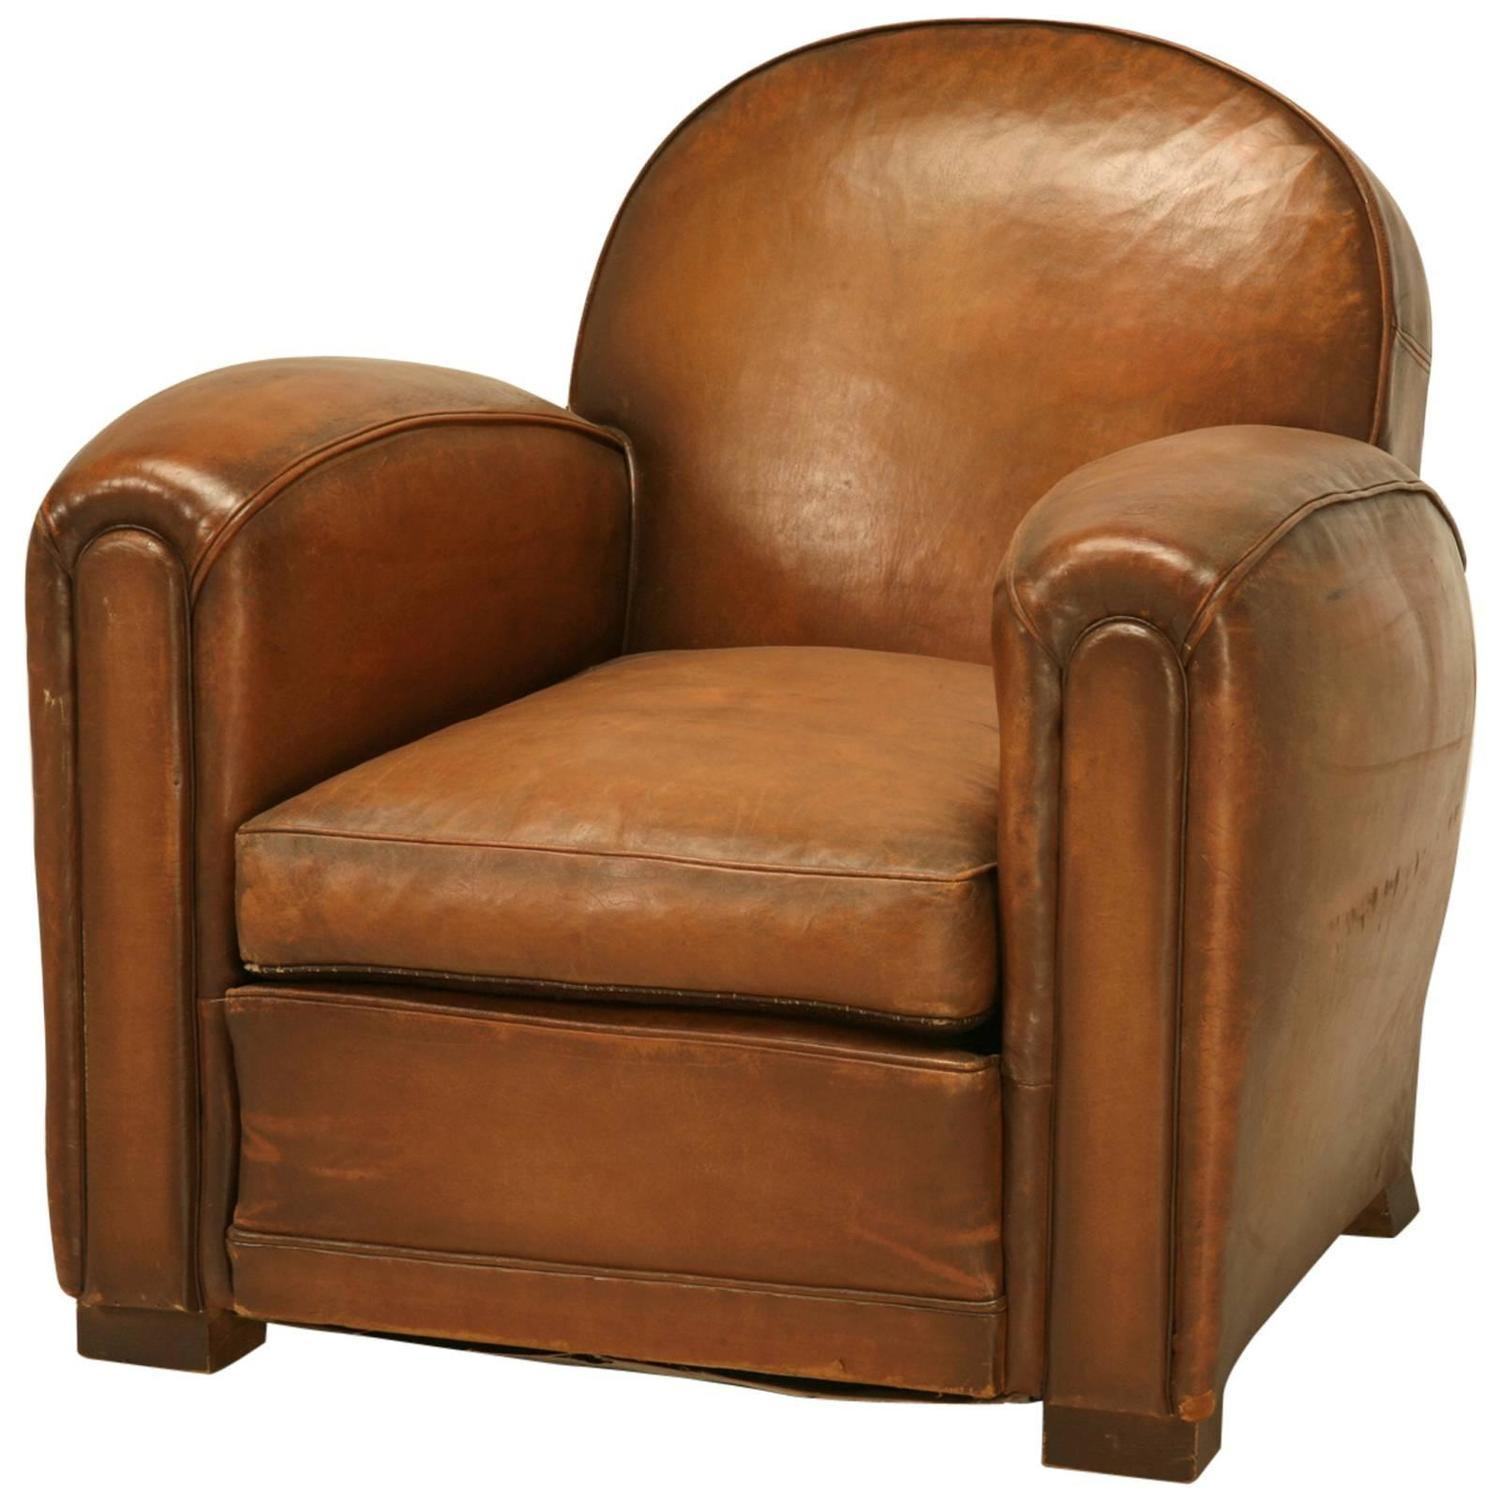 French Club Chair French Leather Club Chair In Mint Original Condition At